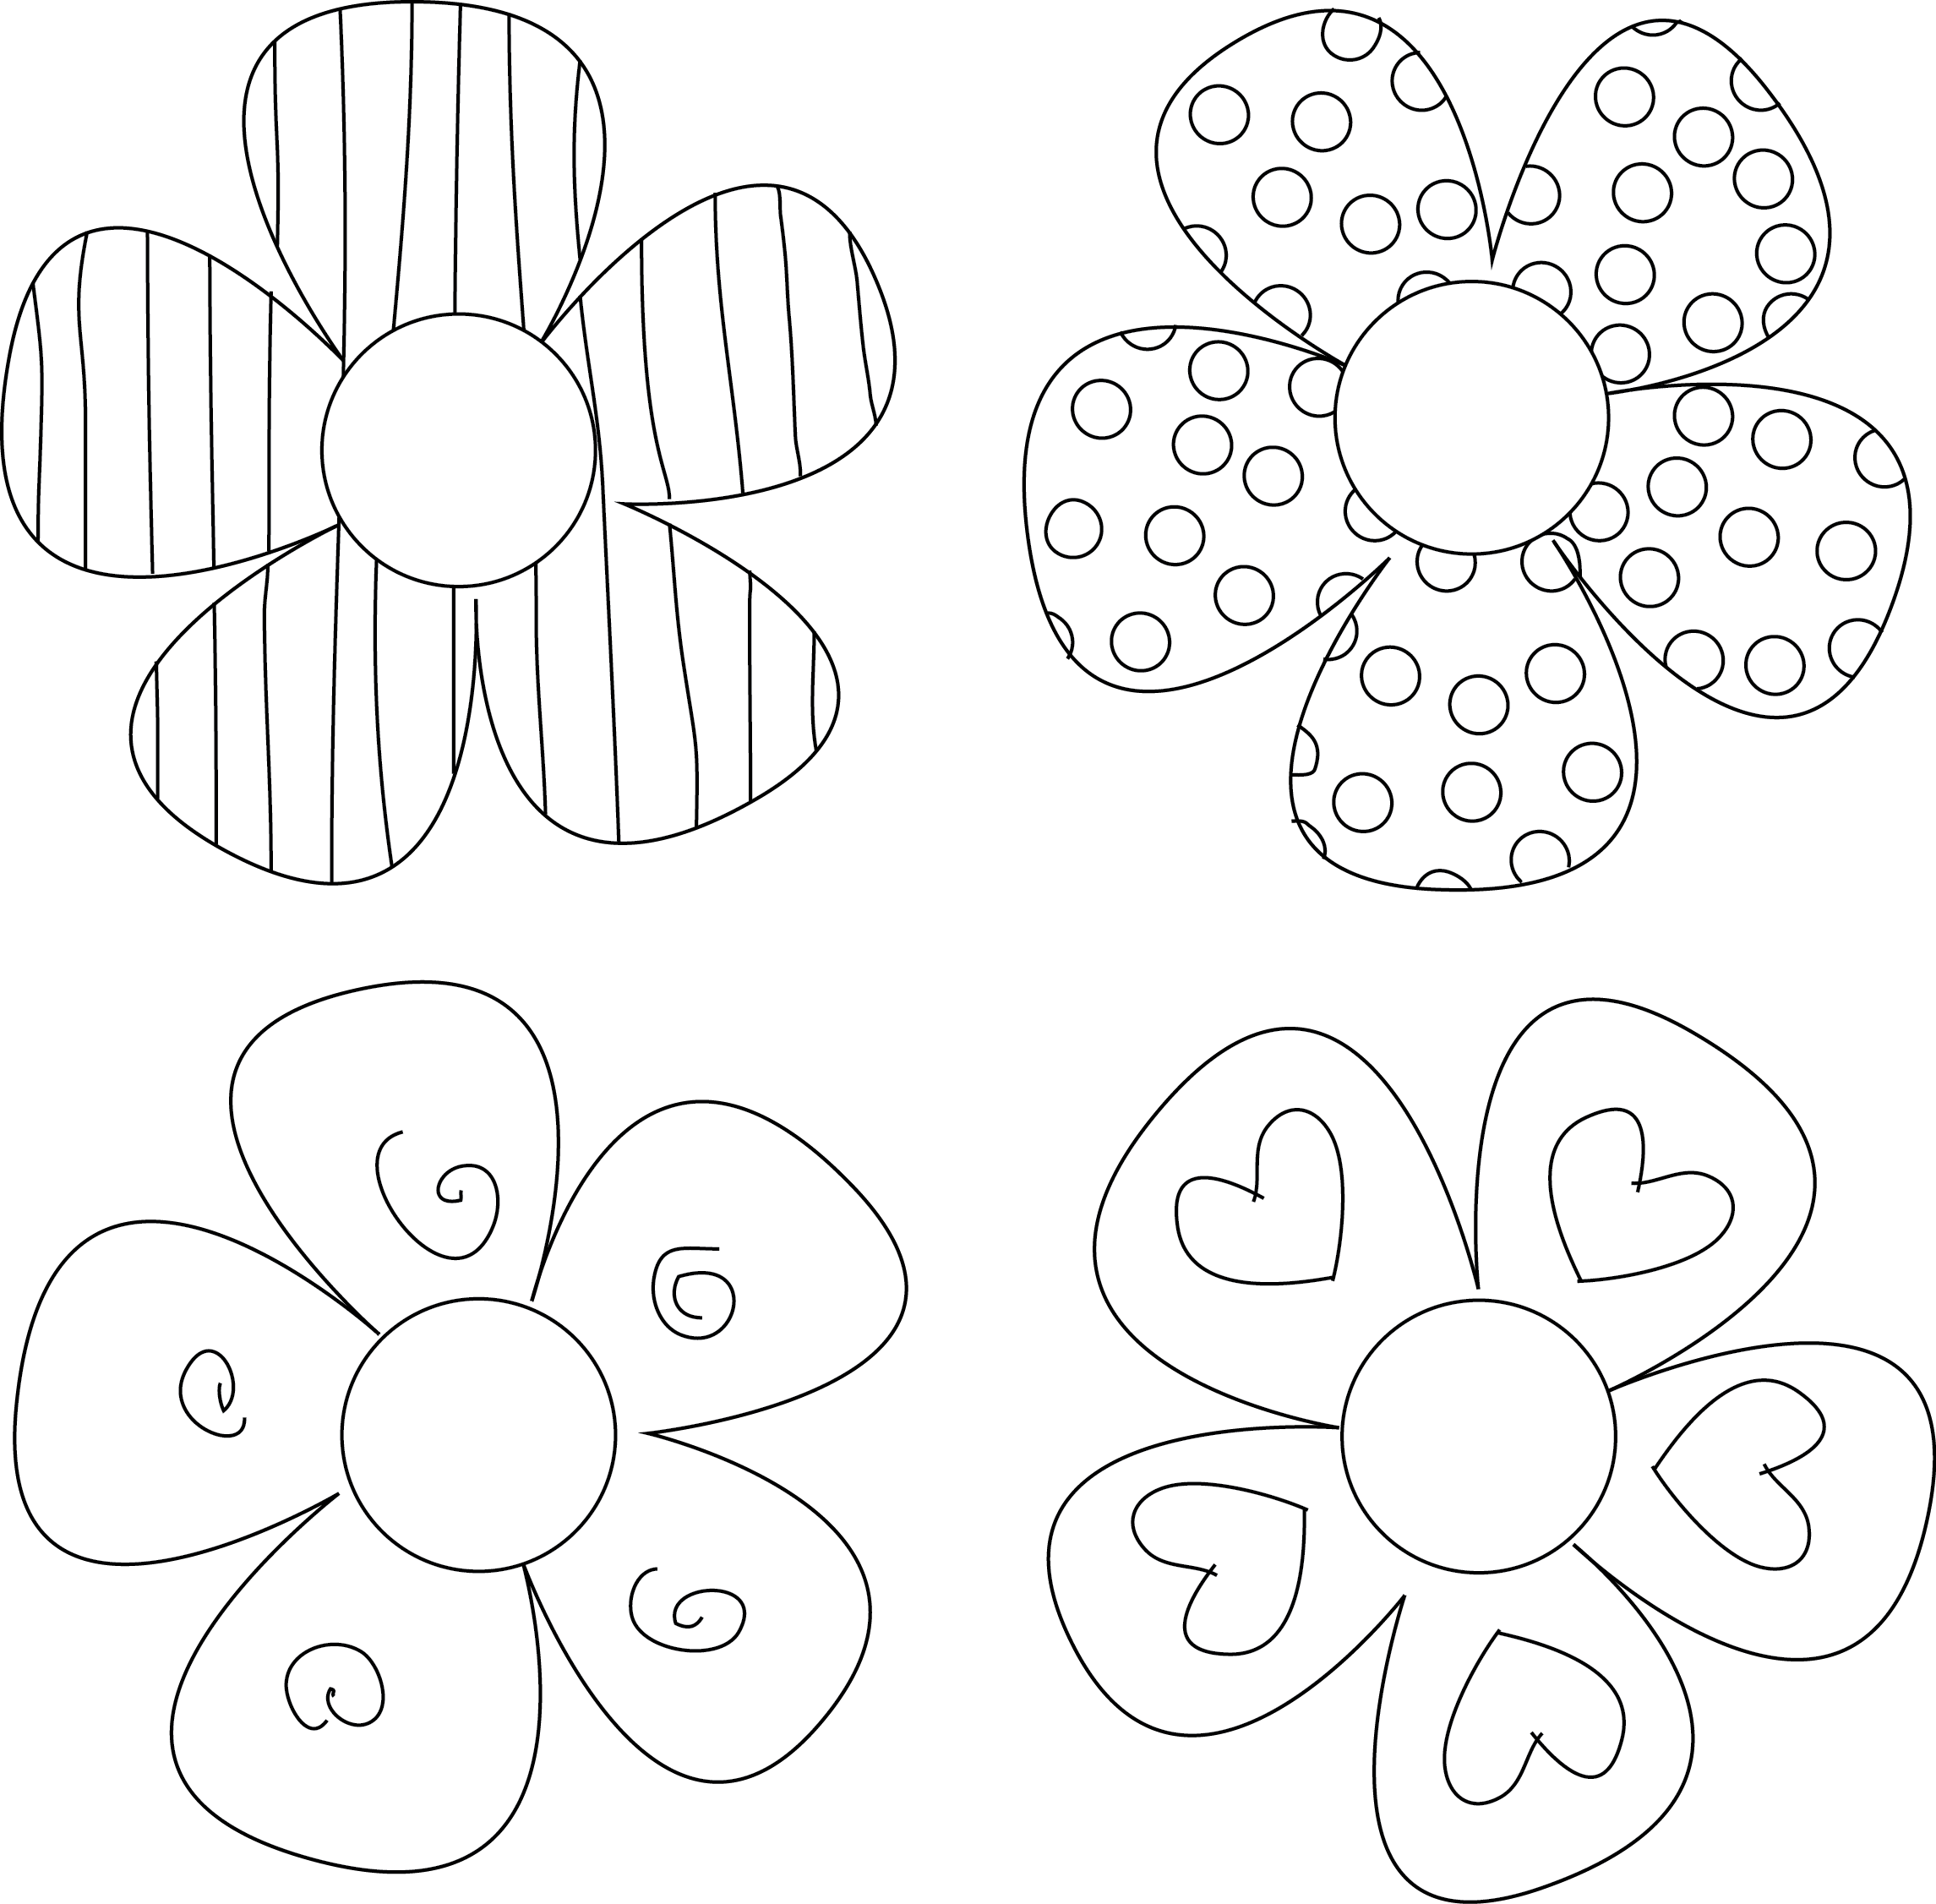 photograph about Flower Stencil Printable identified as Do-it-yourself Flower Tutorials By yourself Should Attempt Painted Pottery Flower